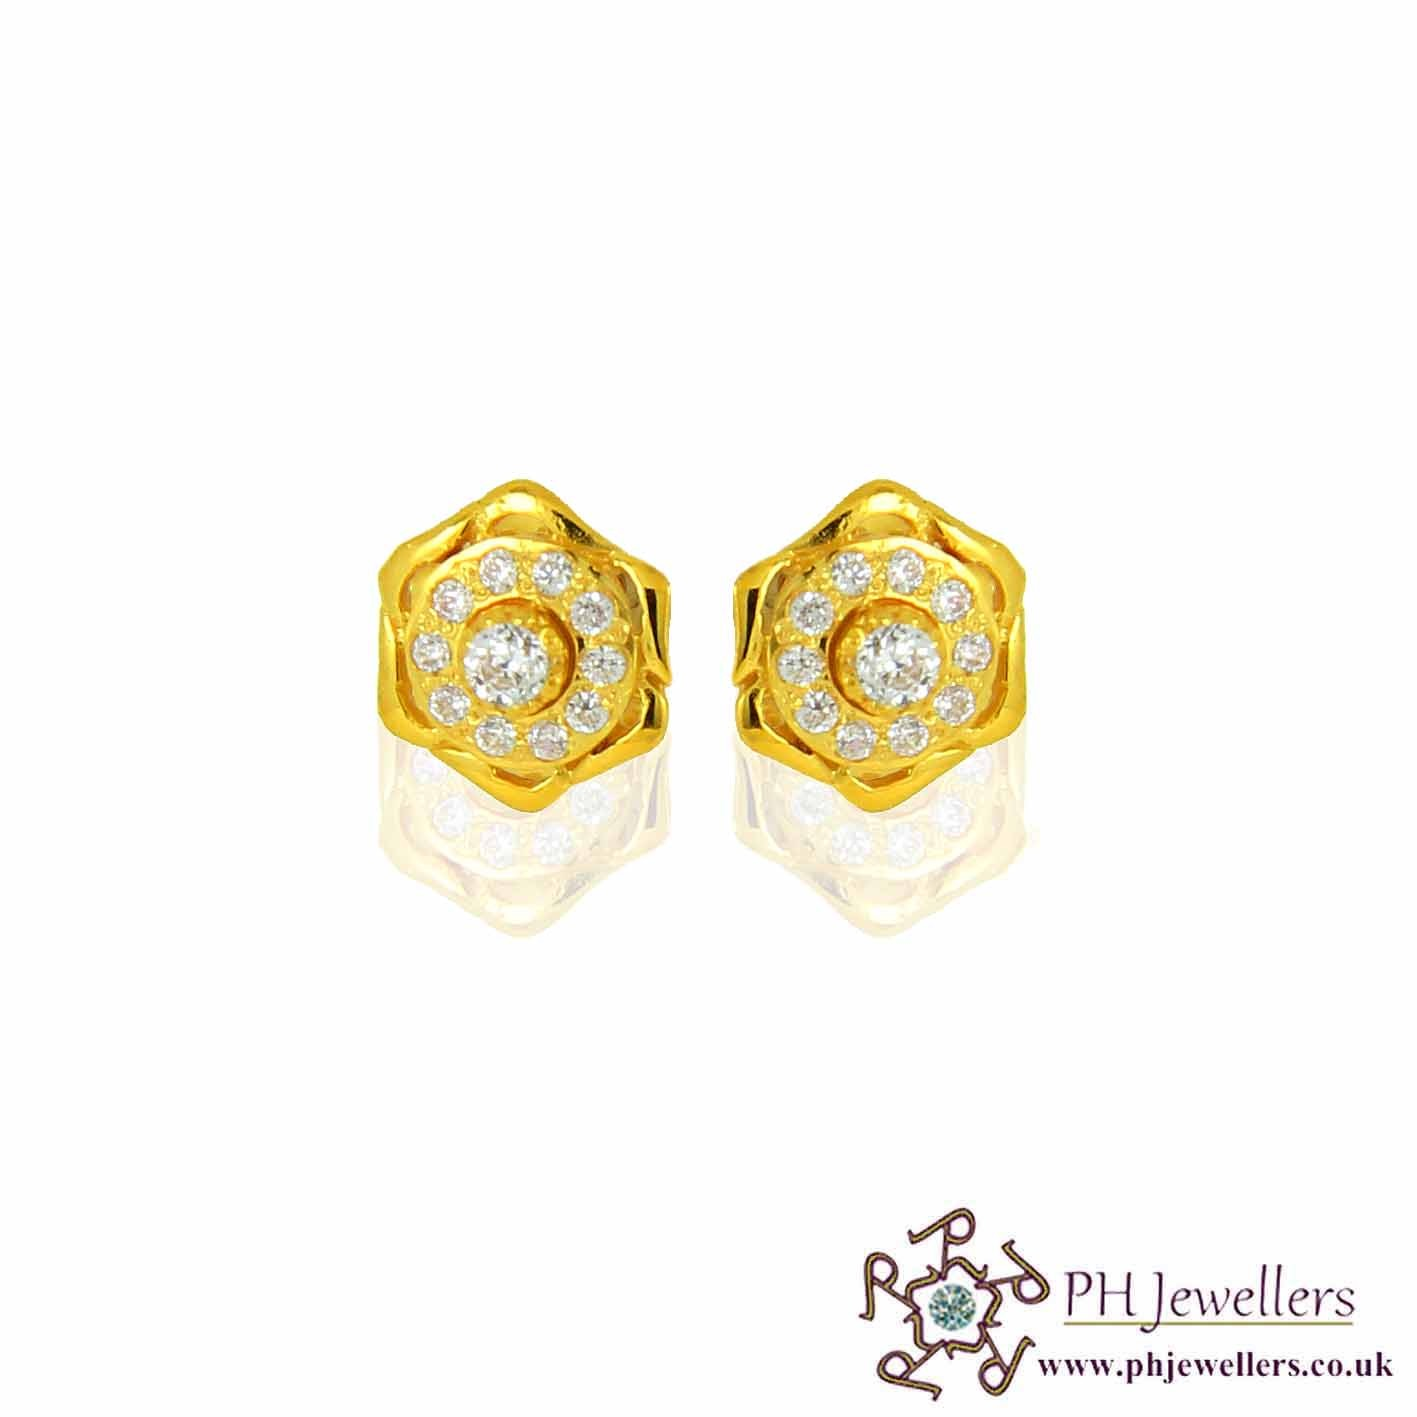 22ct 916 Yellow Gold Earring CZ SE41